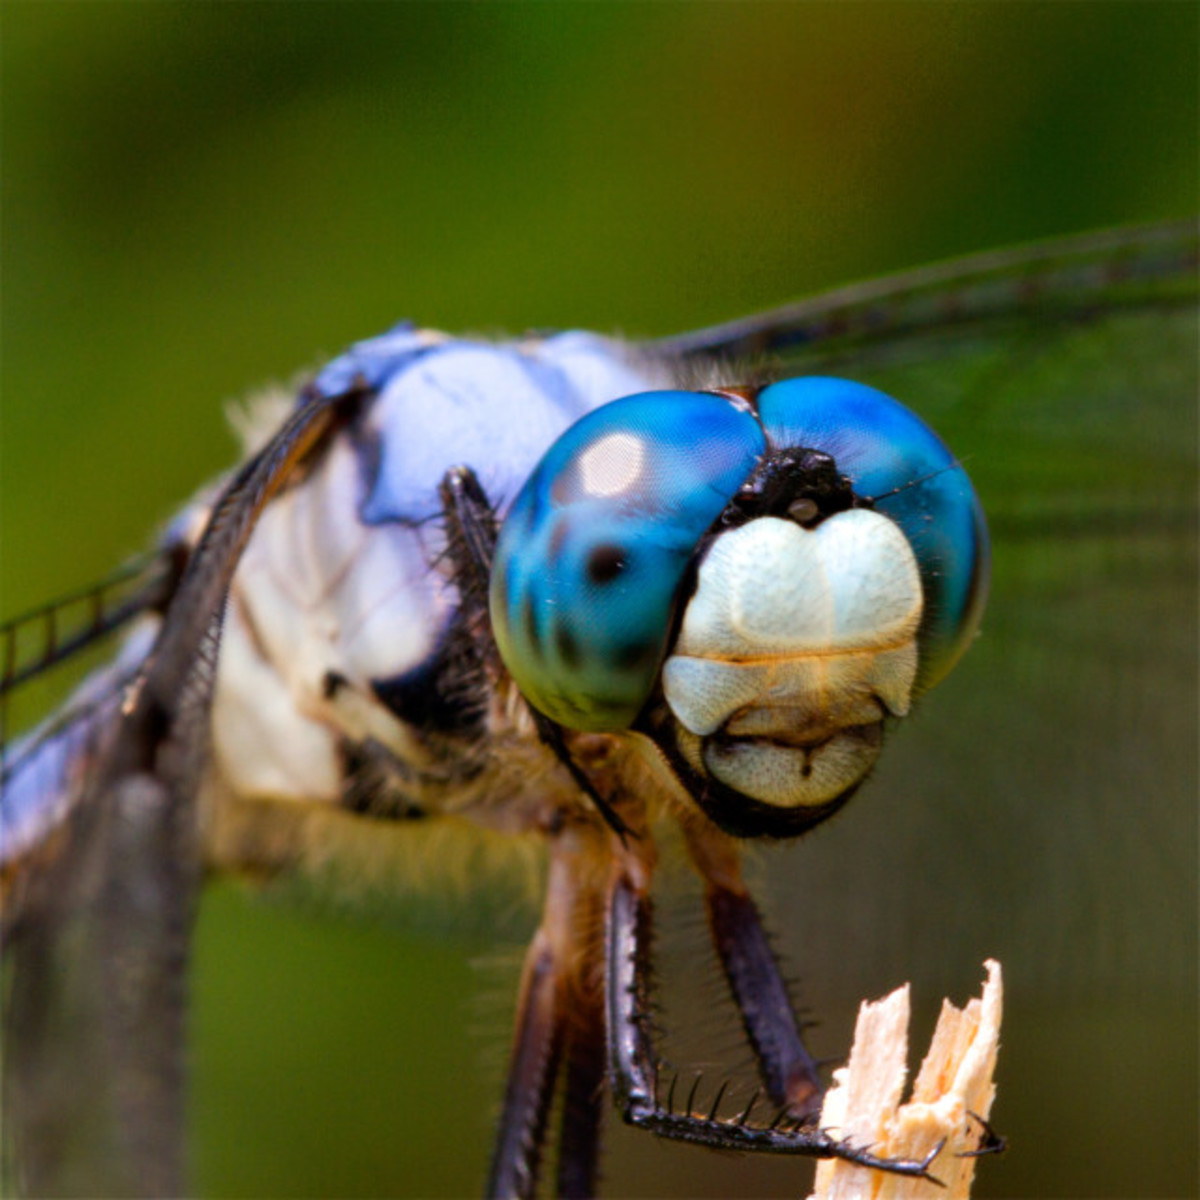 Thoughts About the Dragonfly